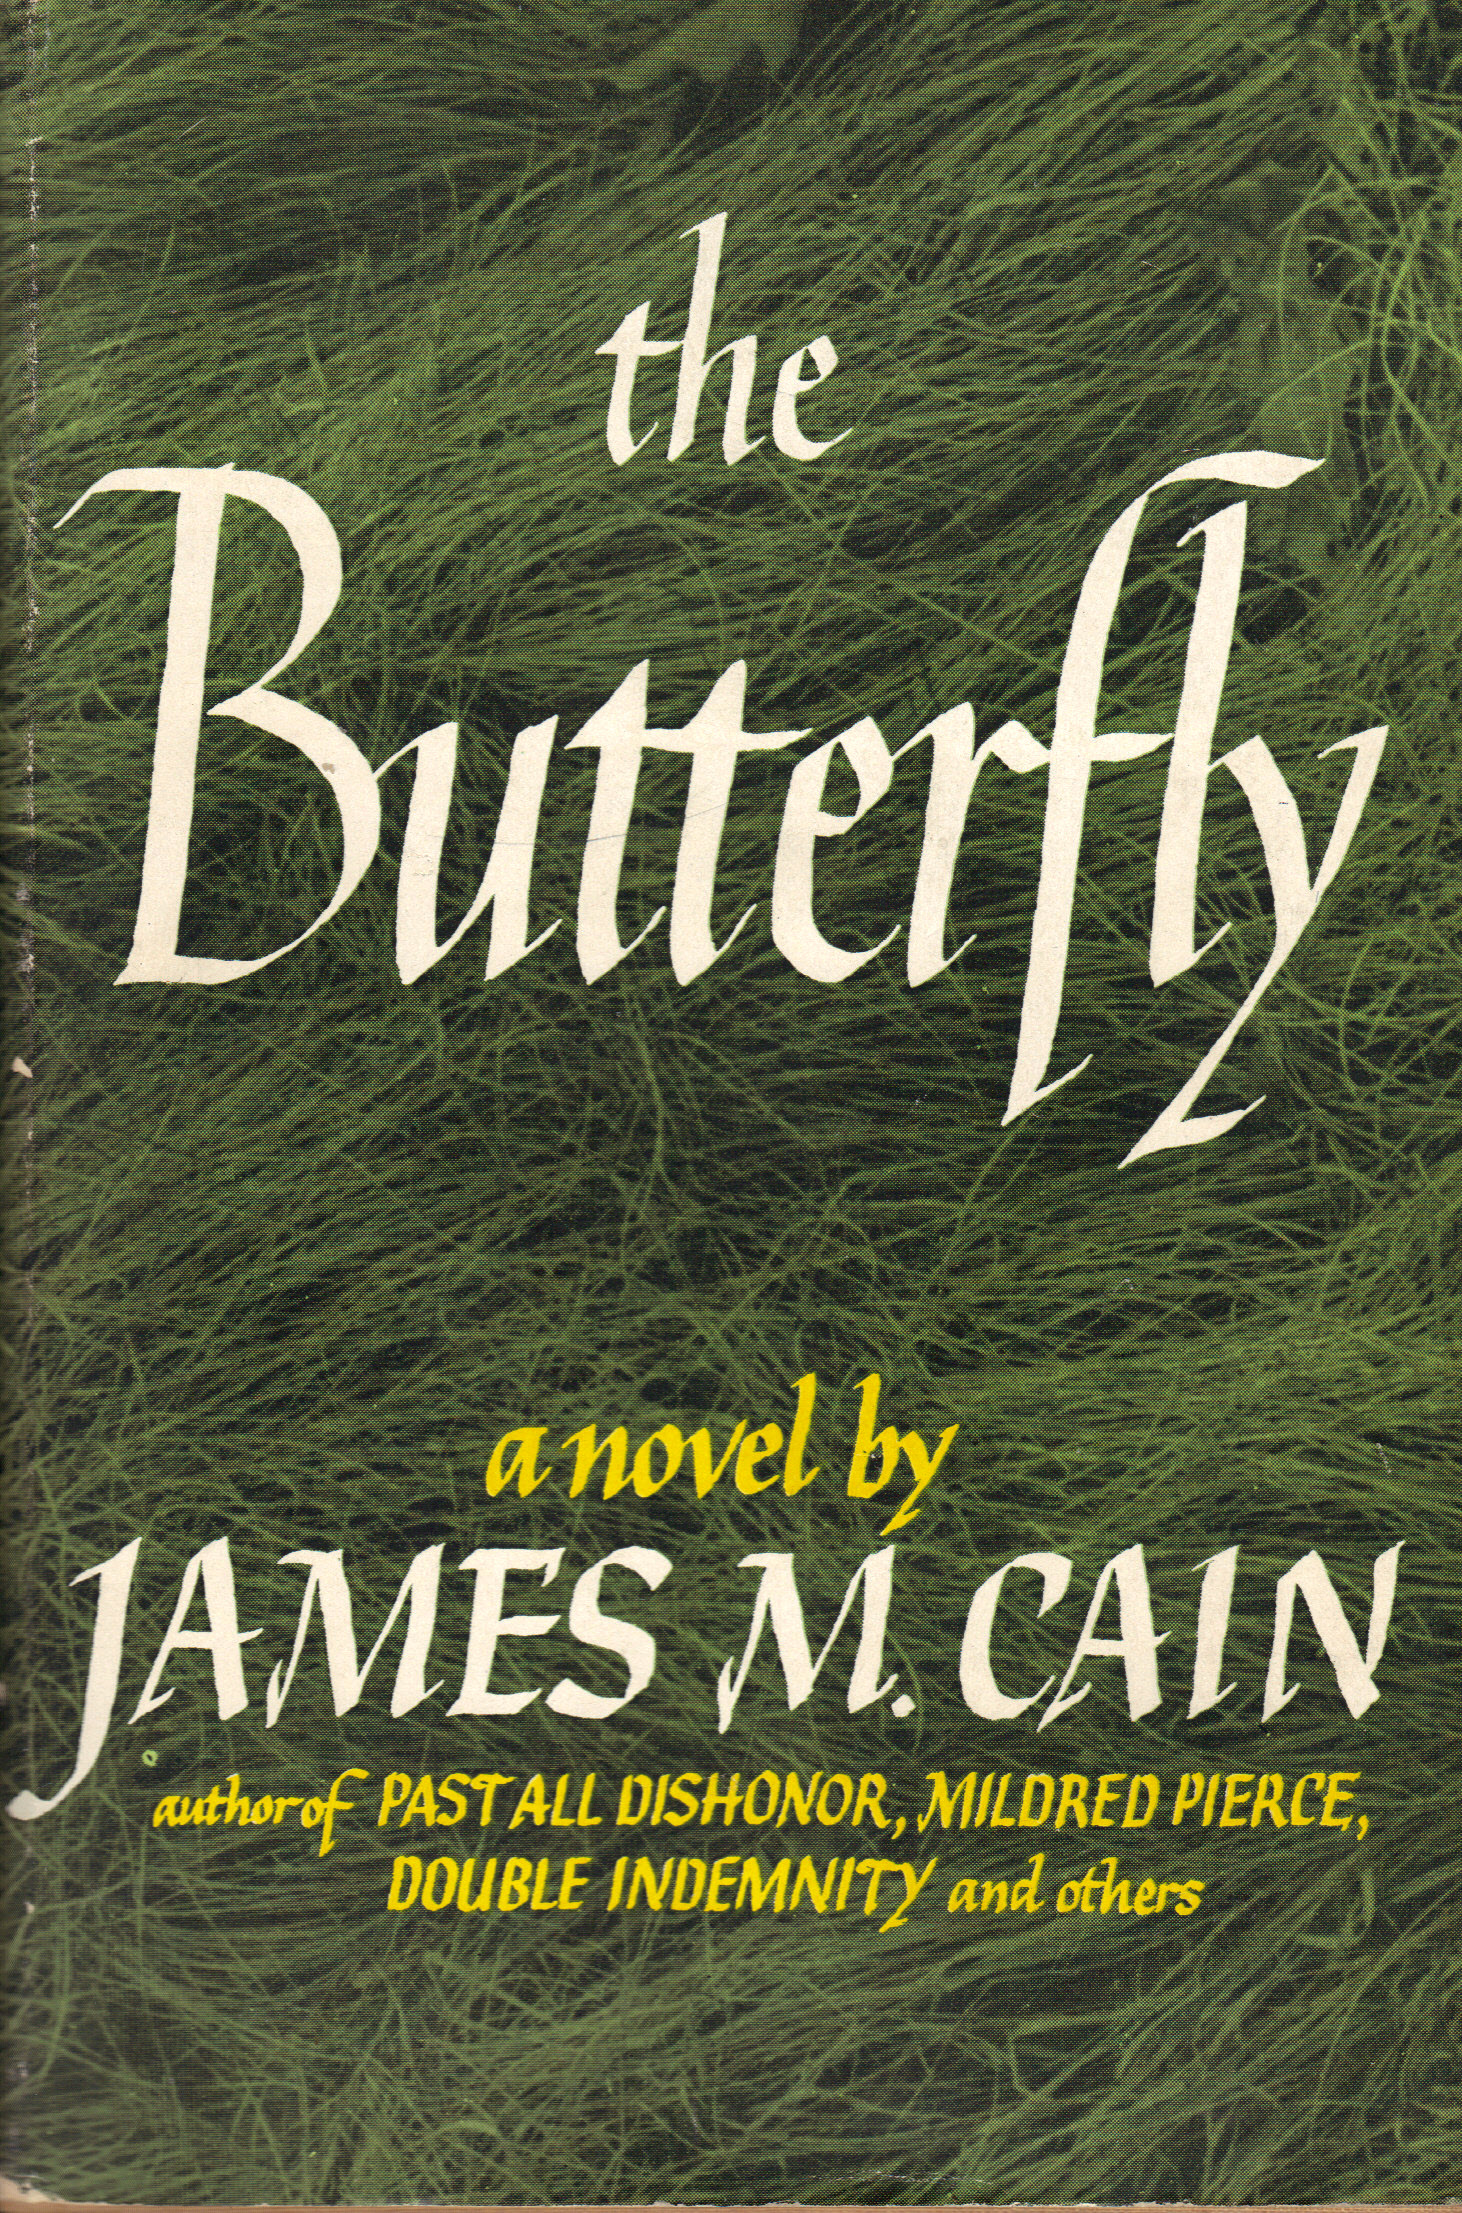 Image for THE BUTTERFLY